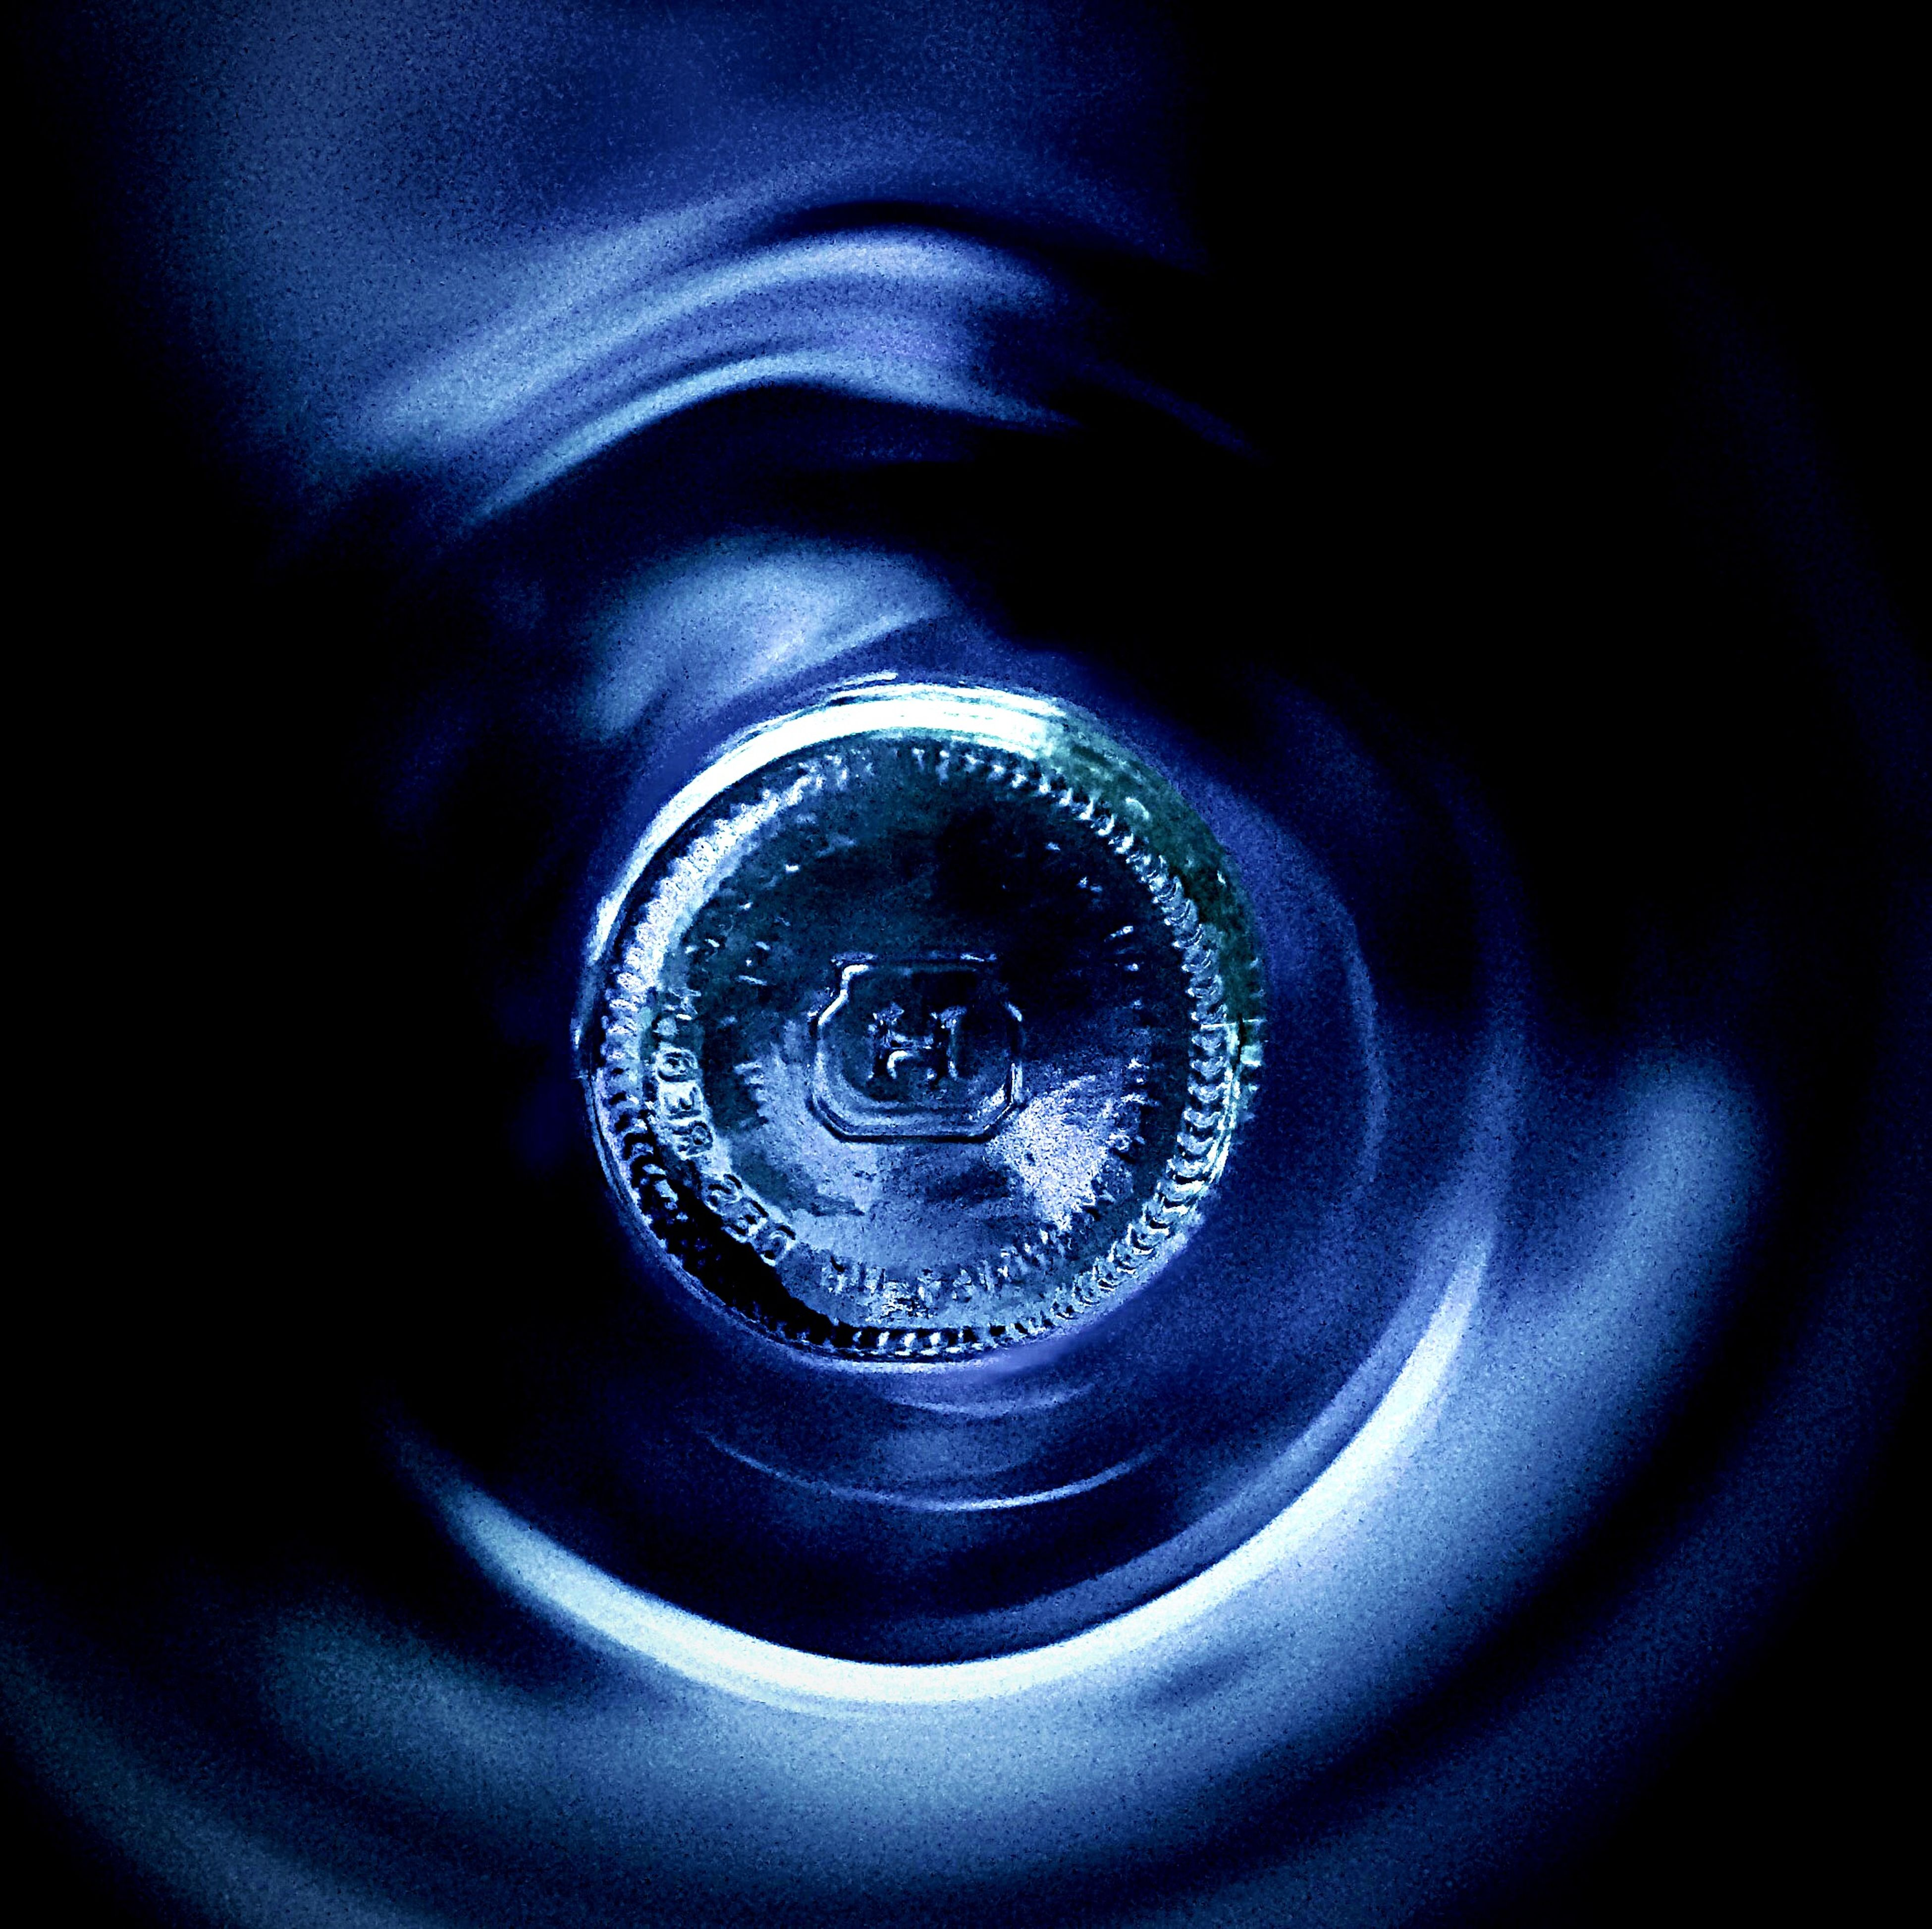 indoors, close-up, metal, single object, technology, circle, no people, part of, still life, studio shot, metallic, selective focus, high angle view, illuminated, blue, pattern, equipment, focus on foreground, shiny, black background